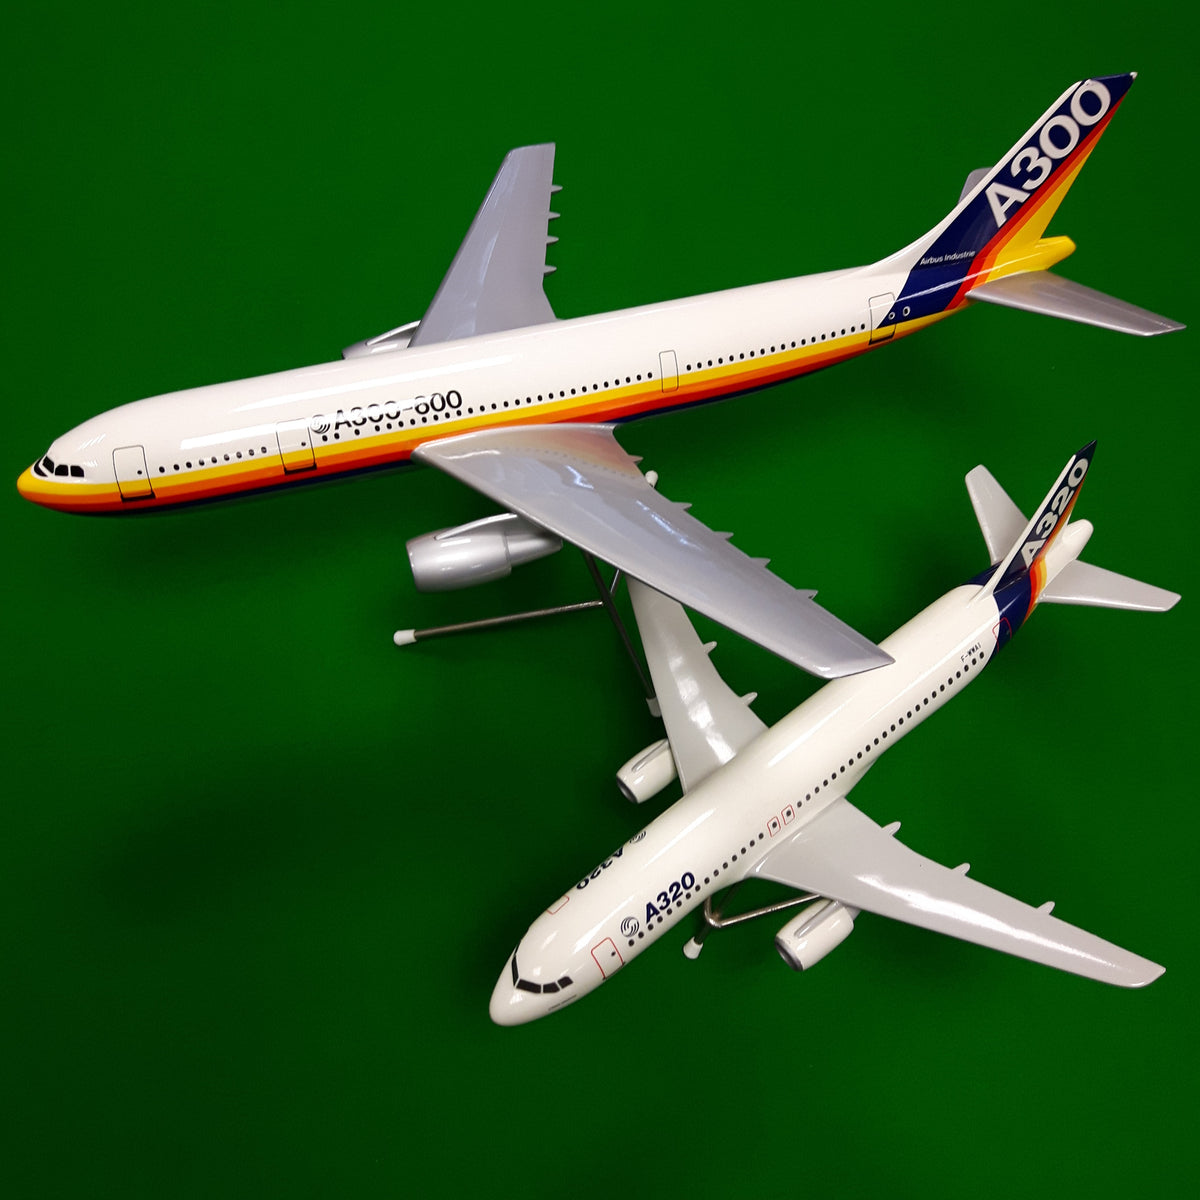 Airbus Industrie Model of A320